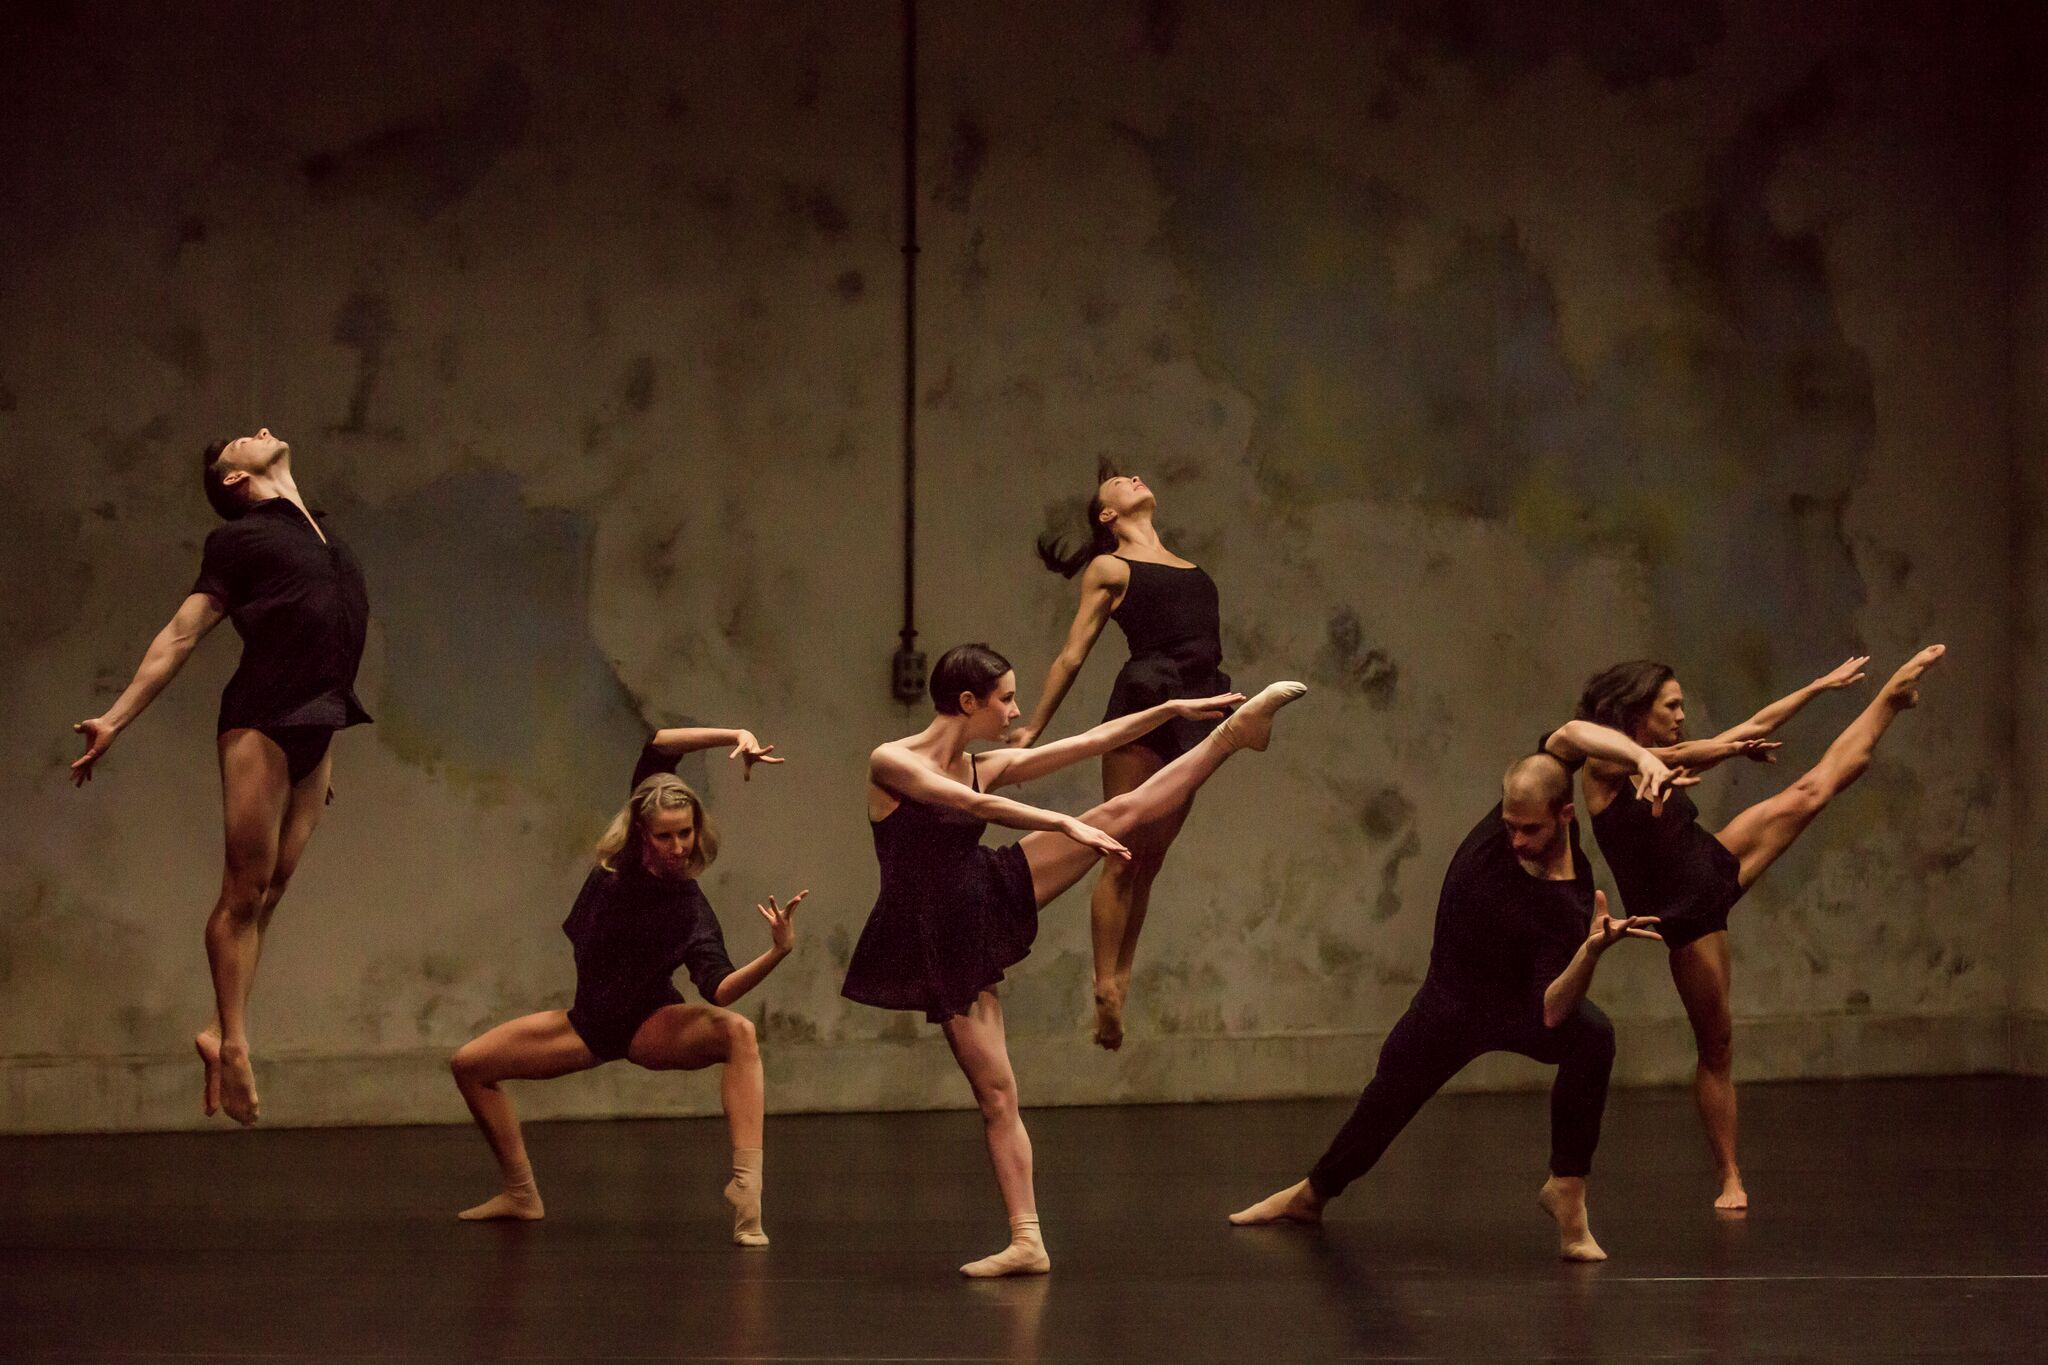 Jesse (middle) in Sydney Dance Company's Frame of Mind. Photography: Peter Greig